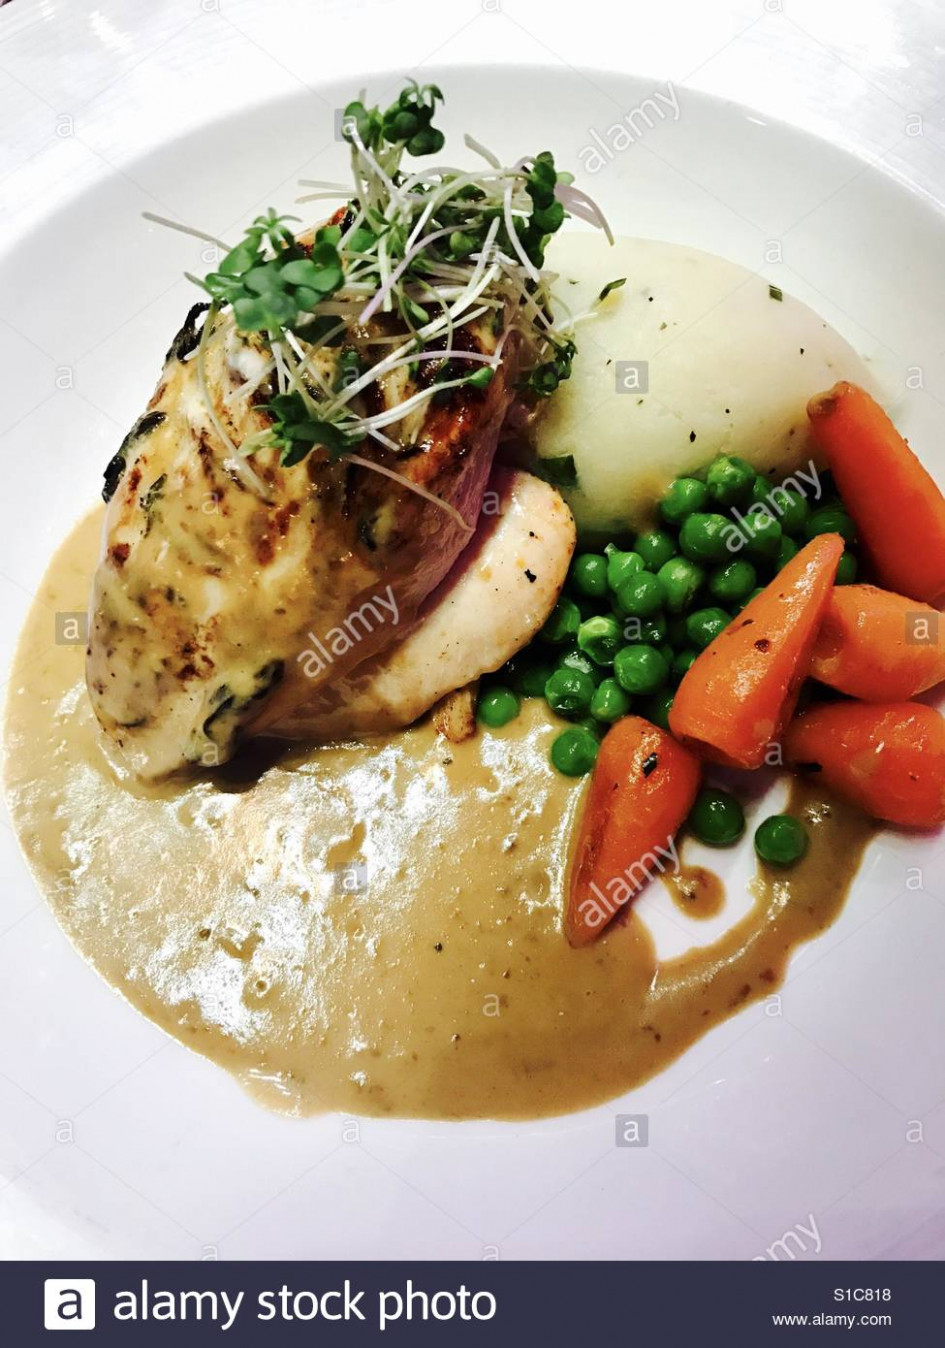 Chicken with mashed potato, vegetables and gravy Stock Photo ..